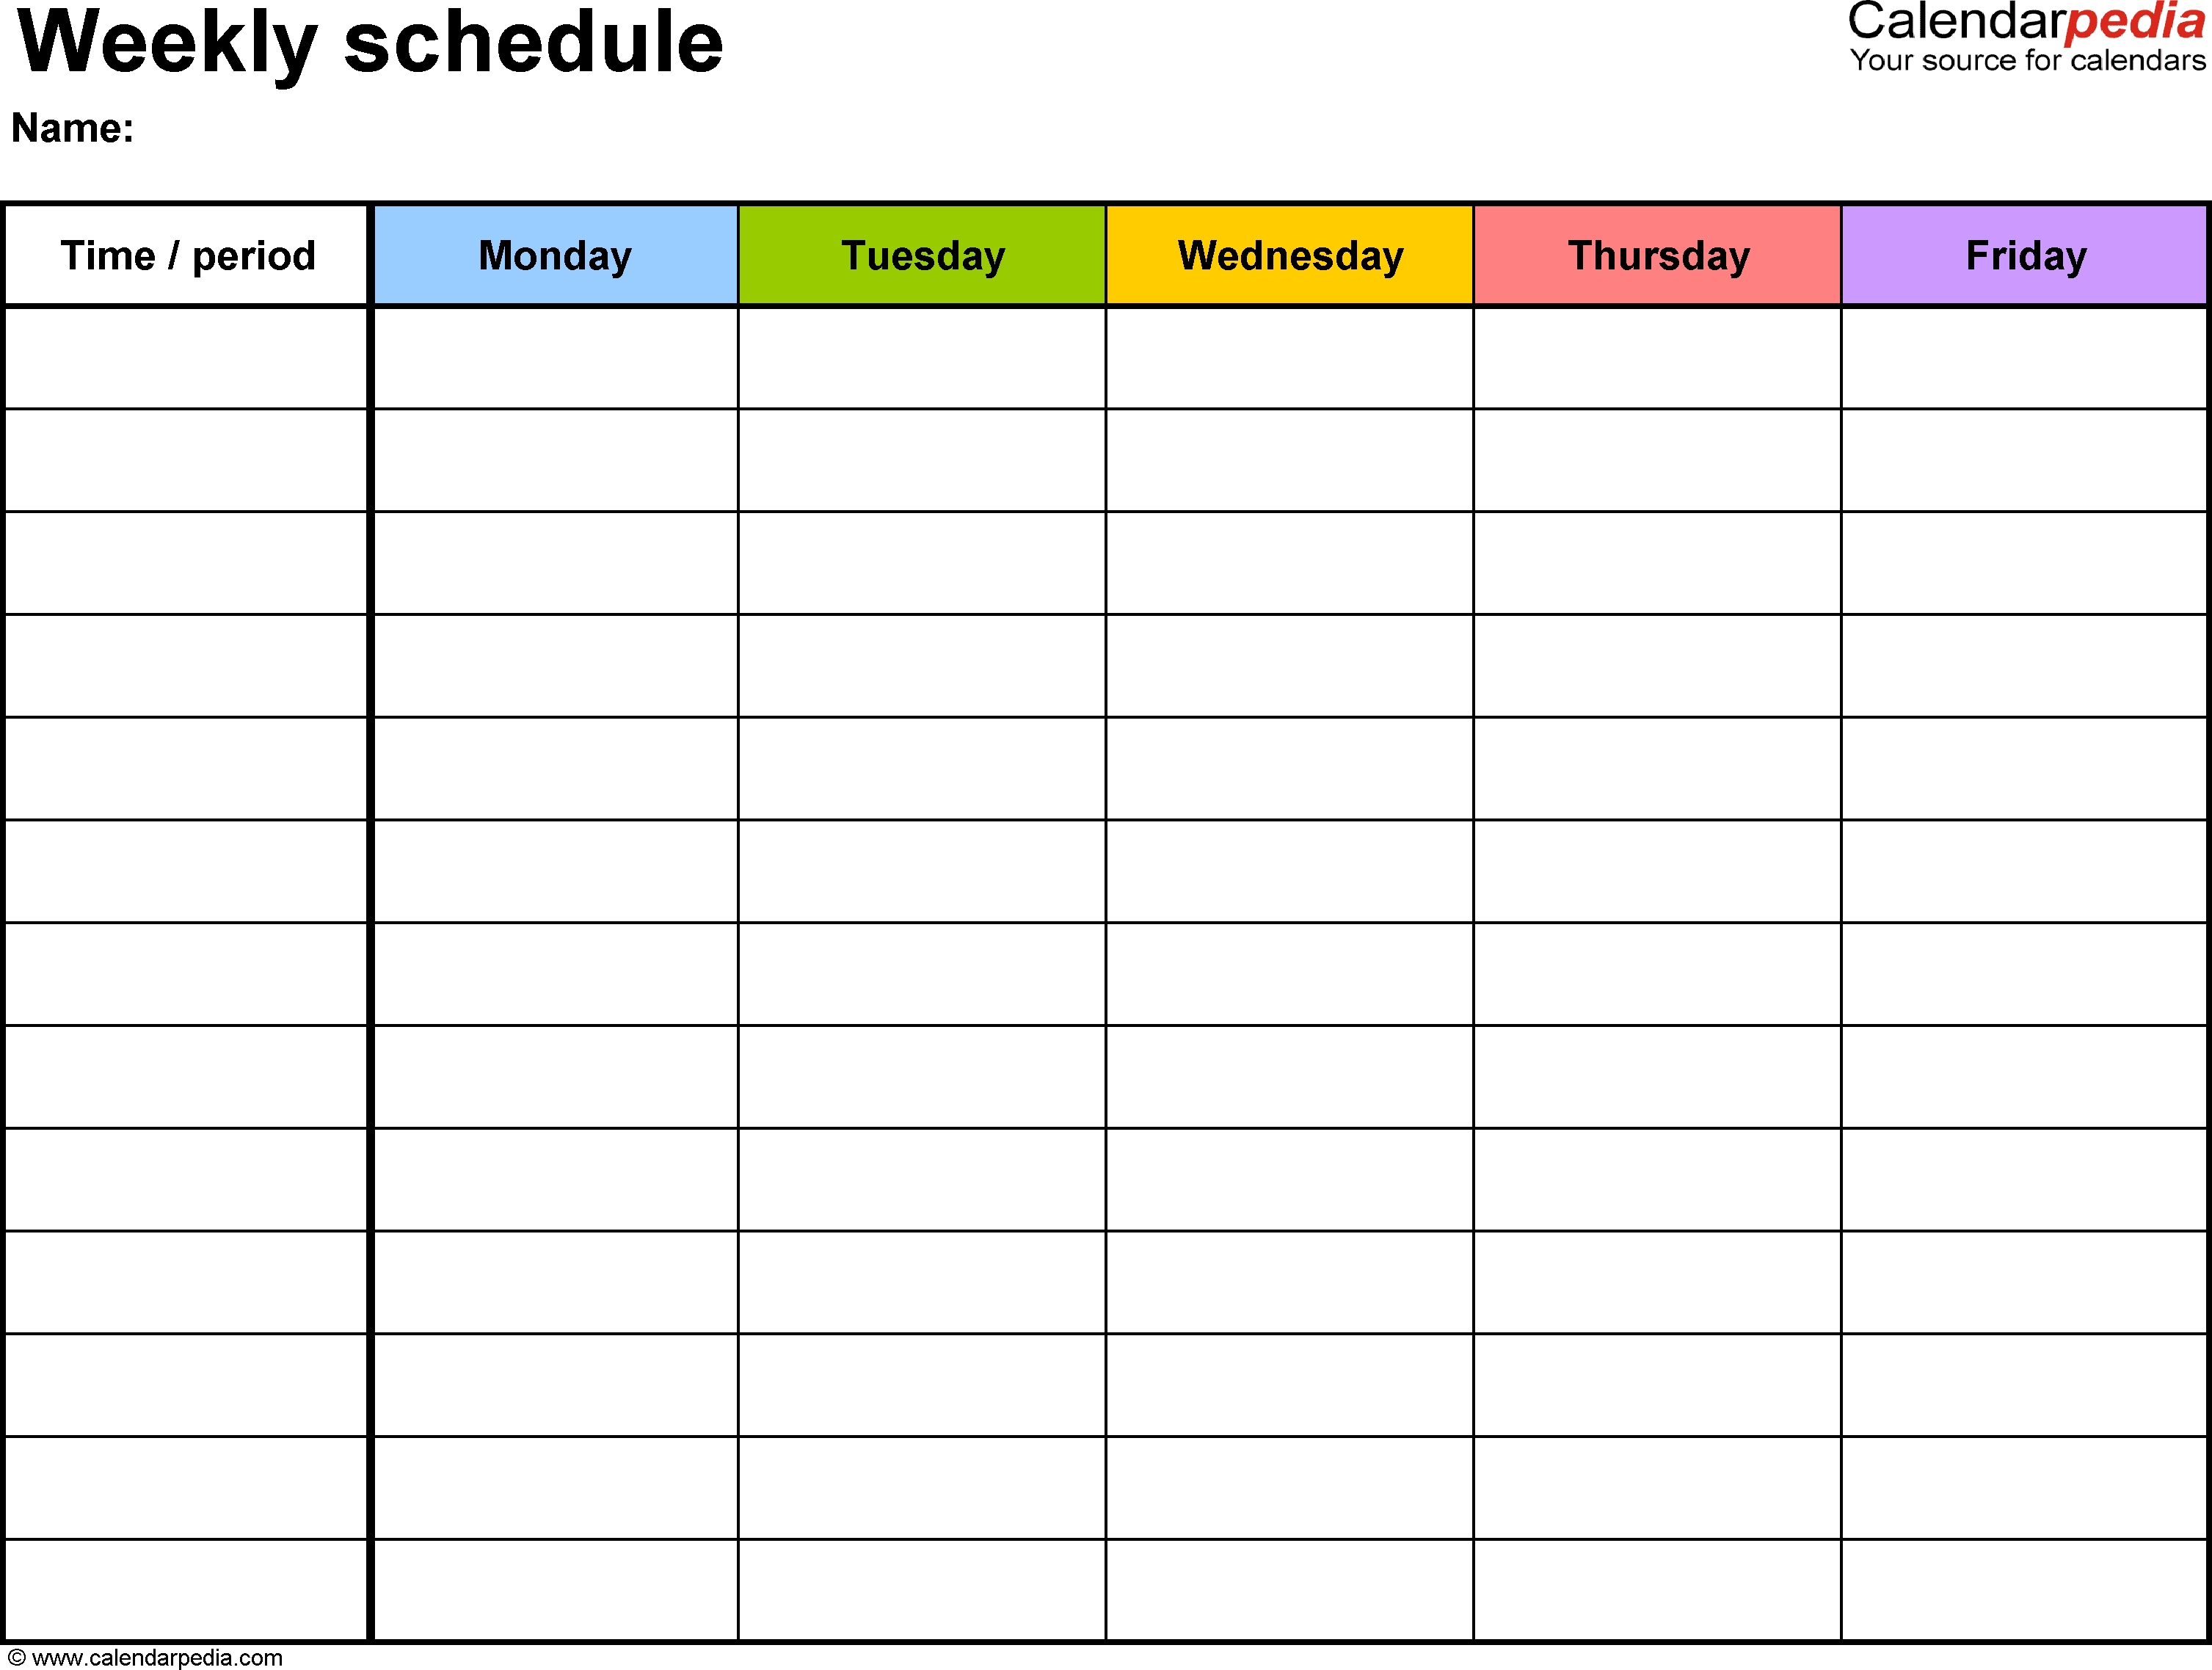 calendar with time slots template Weekly Calendar With Time Slots Template erdferdf